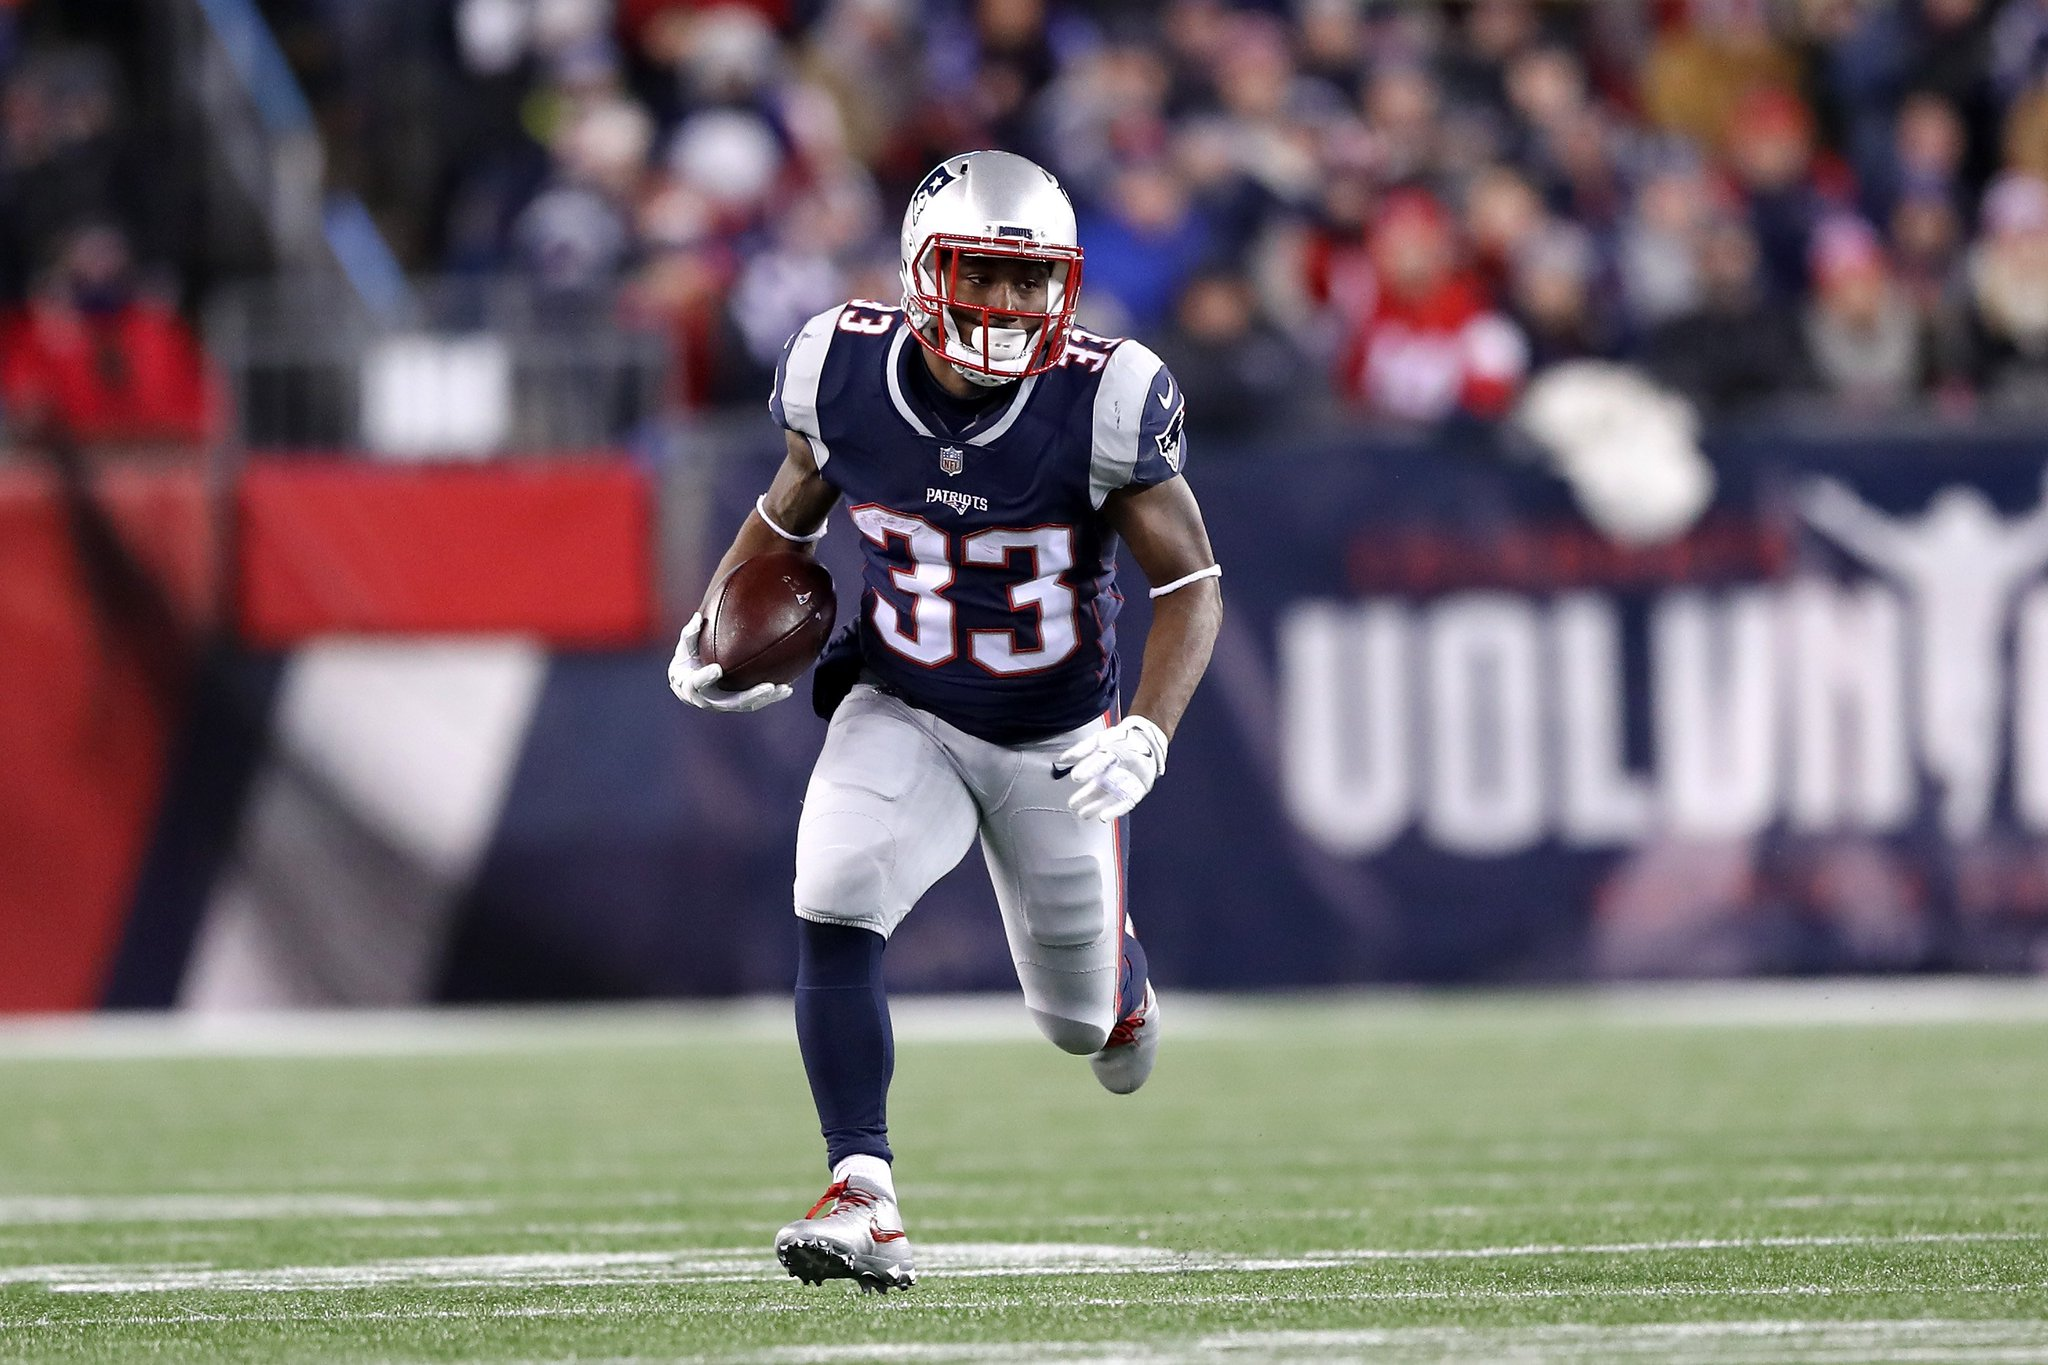 Dion Lewis tops our free-agent RB list. How does the rest of the list shake out? https://t.co/o13BZbzhSm https://t.co/DympdE07kf